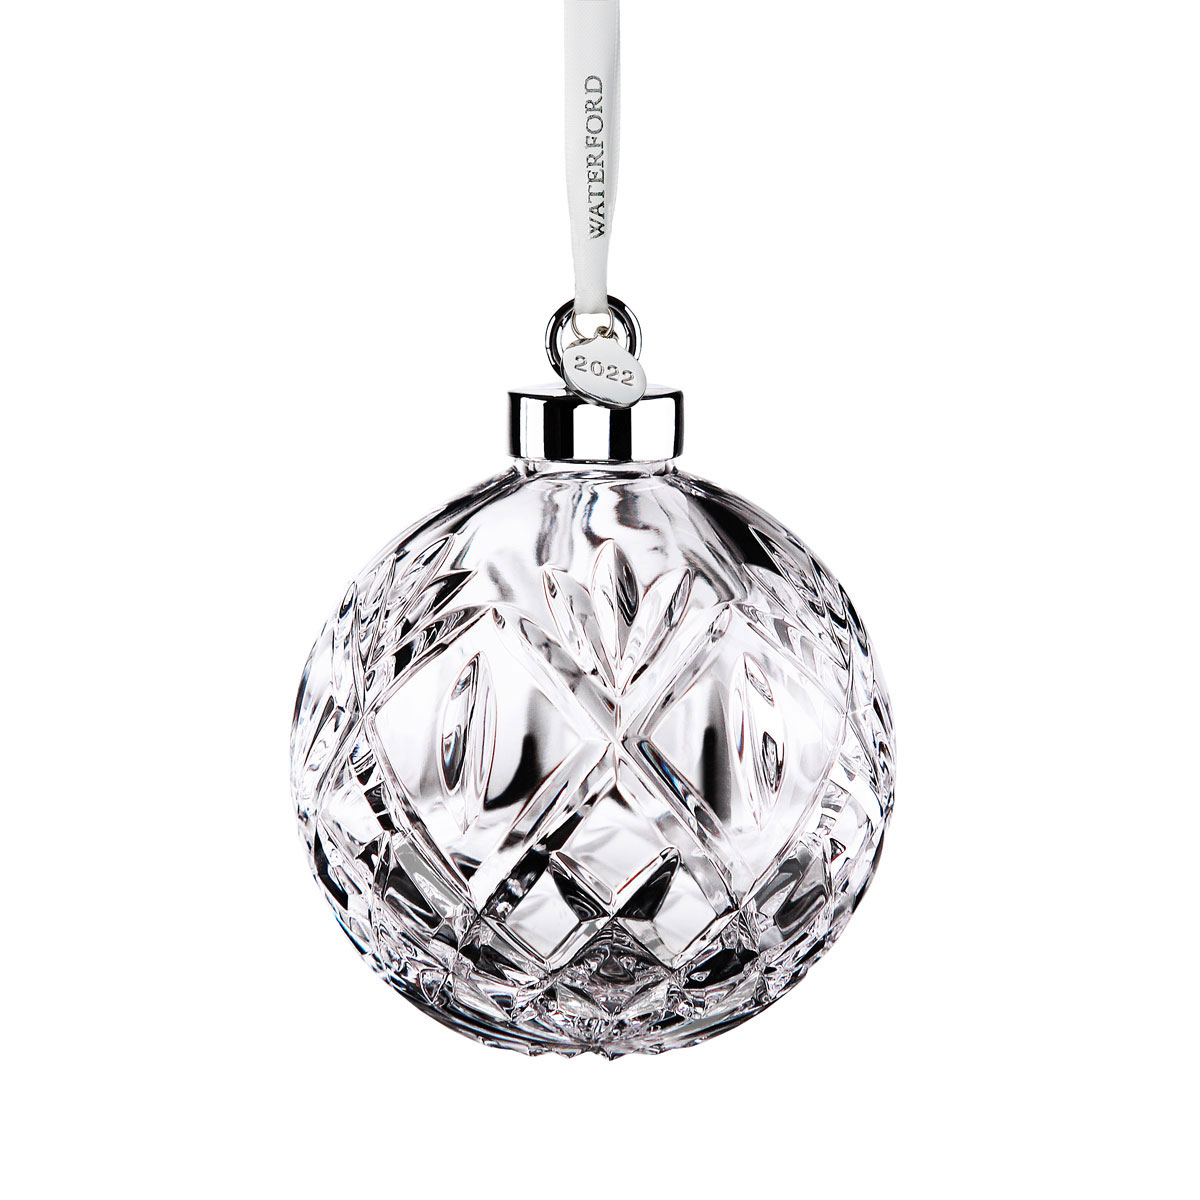 Crystal Christmas Ornaments 2020 Waterford Crystal 2020 Huntley Ball Ornament, Limited Edition